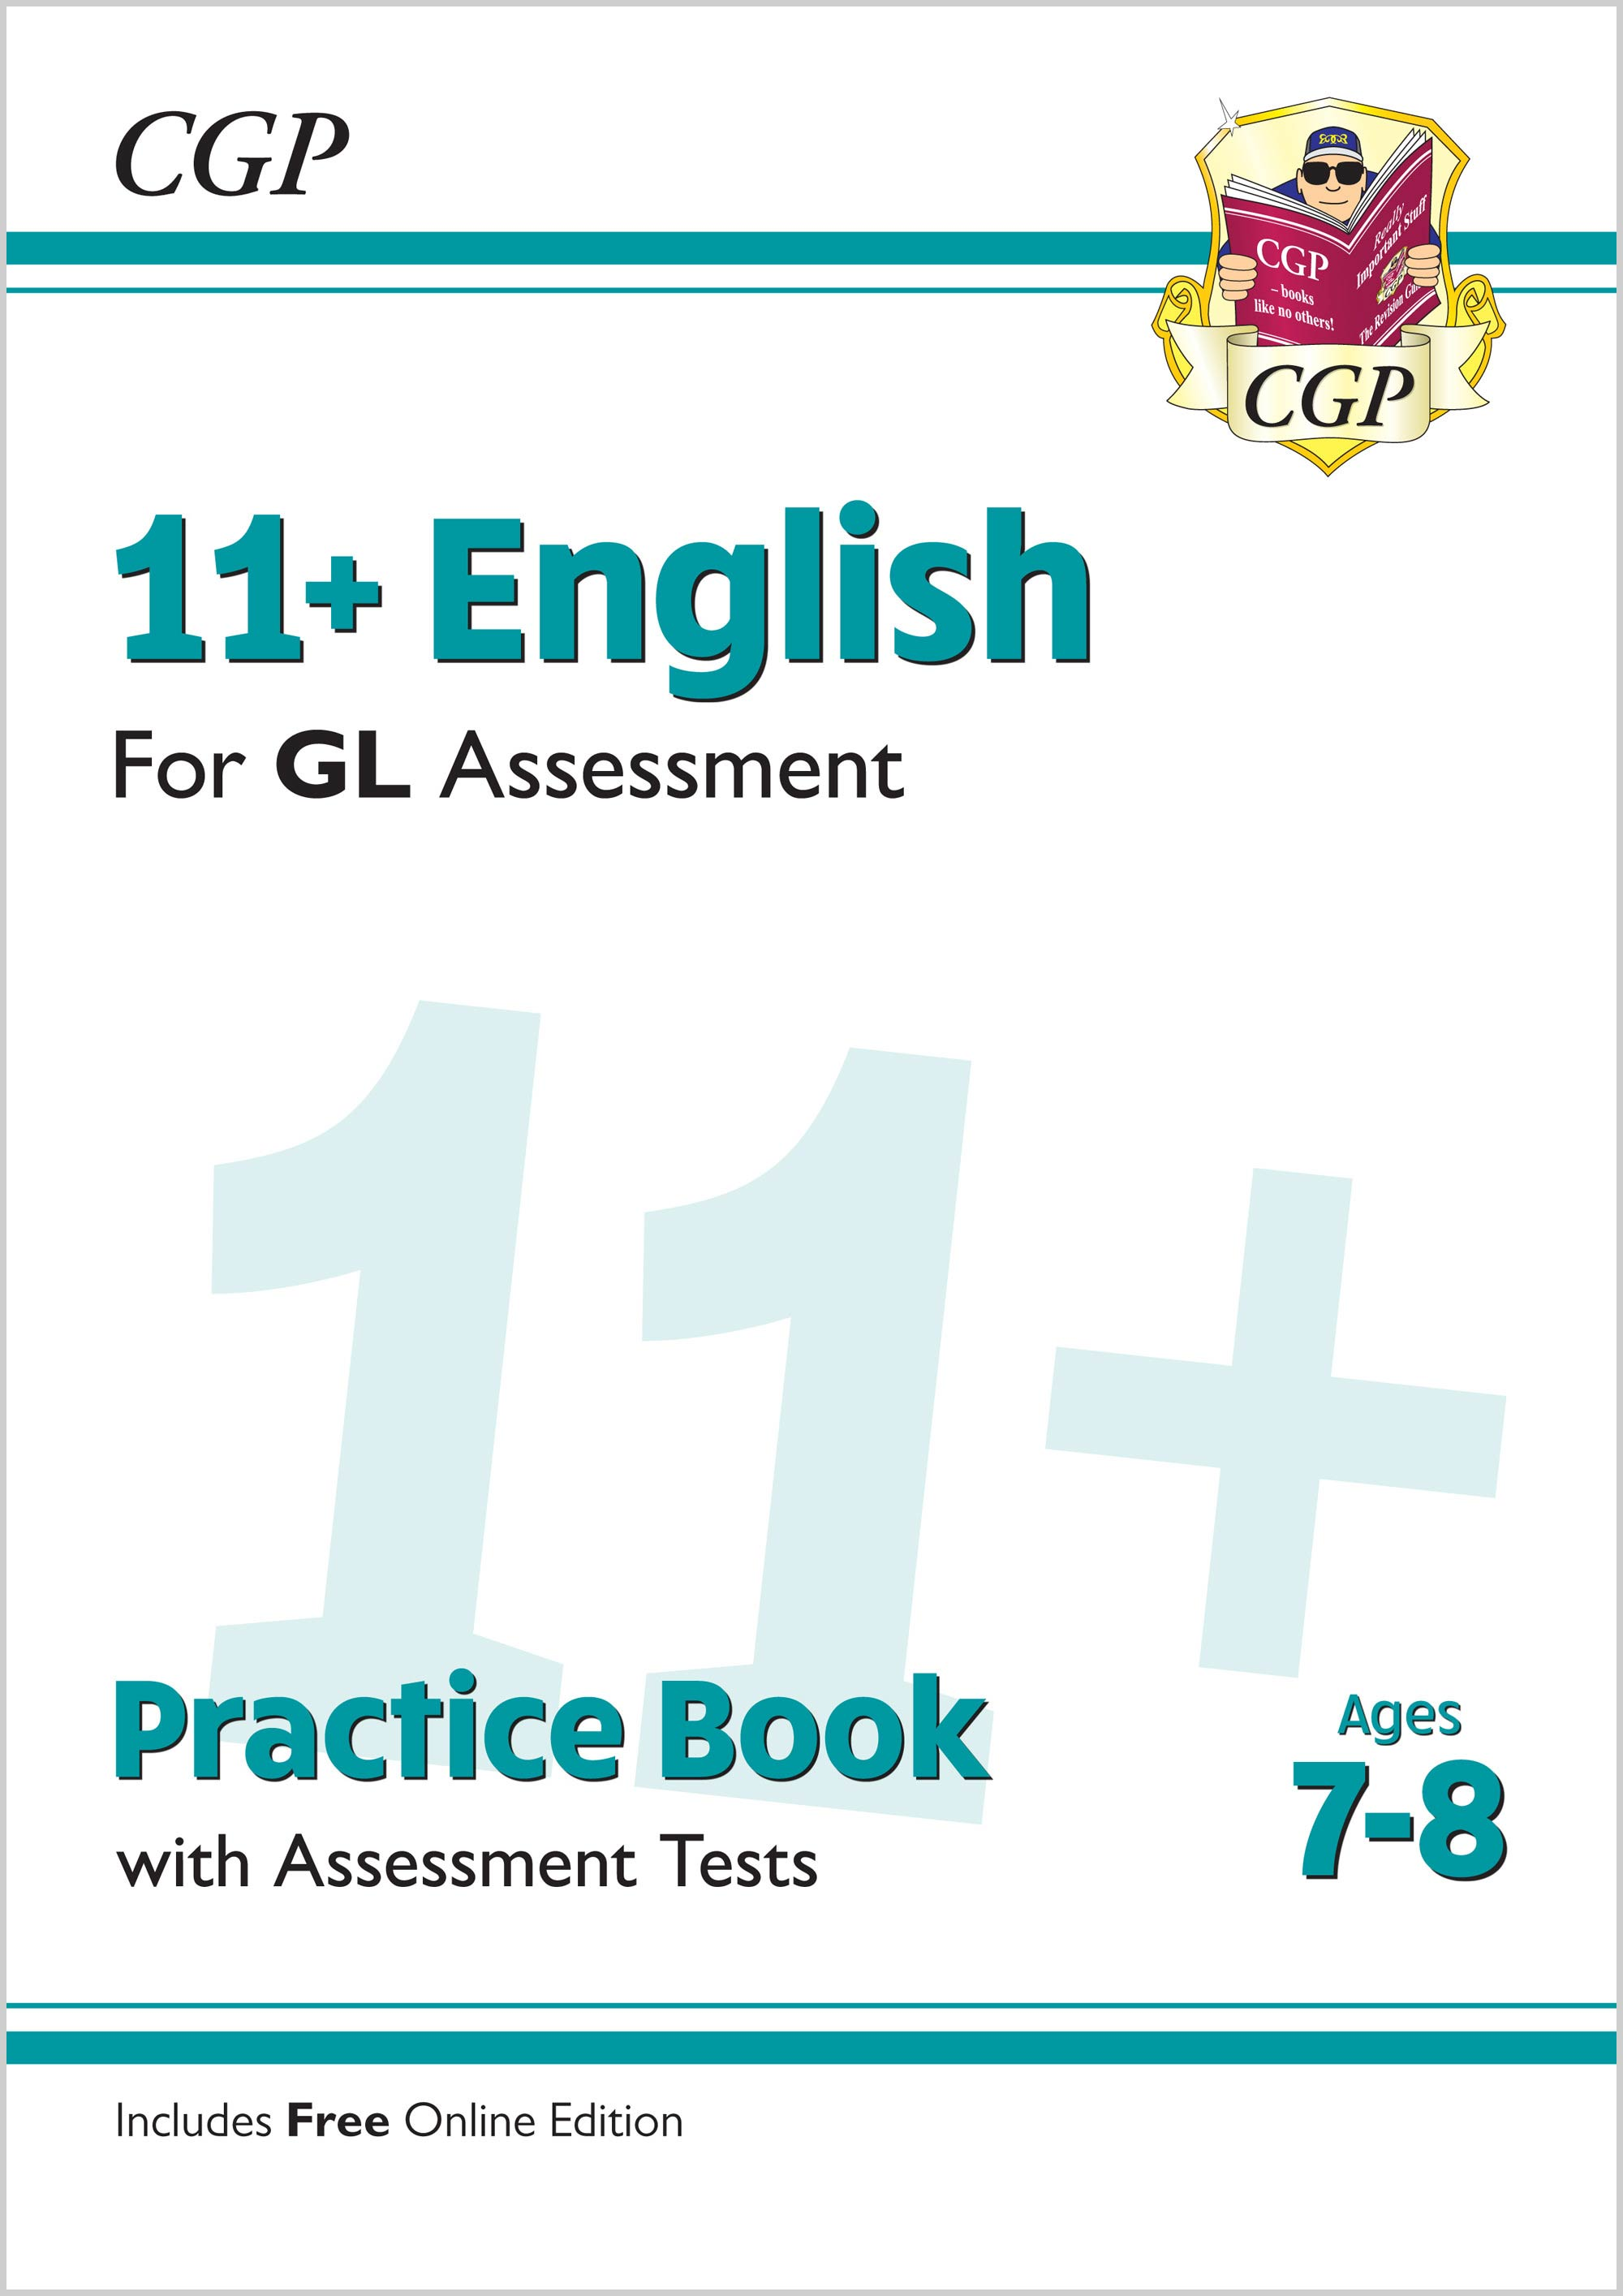 E3QE2 - 11+ GL English Practice Book & Assessment Tests - Ages 7-8 (with Online Edition)